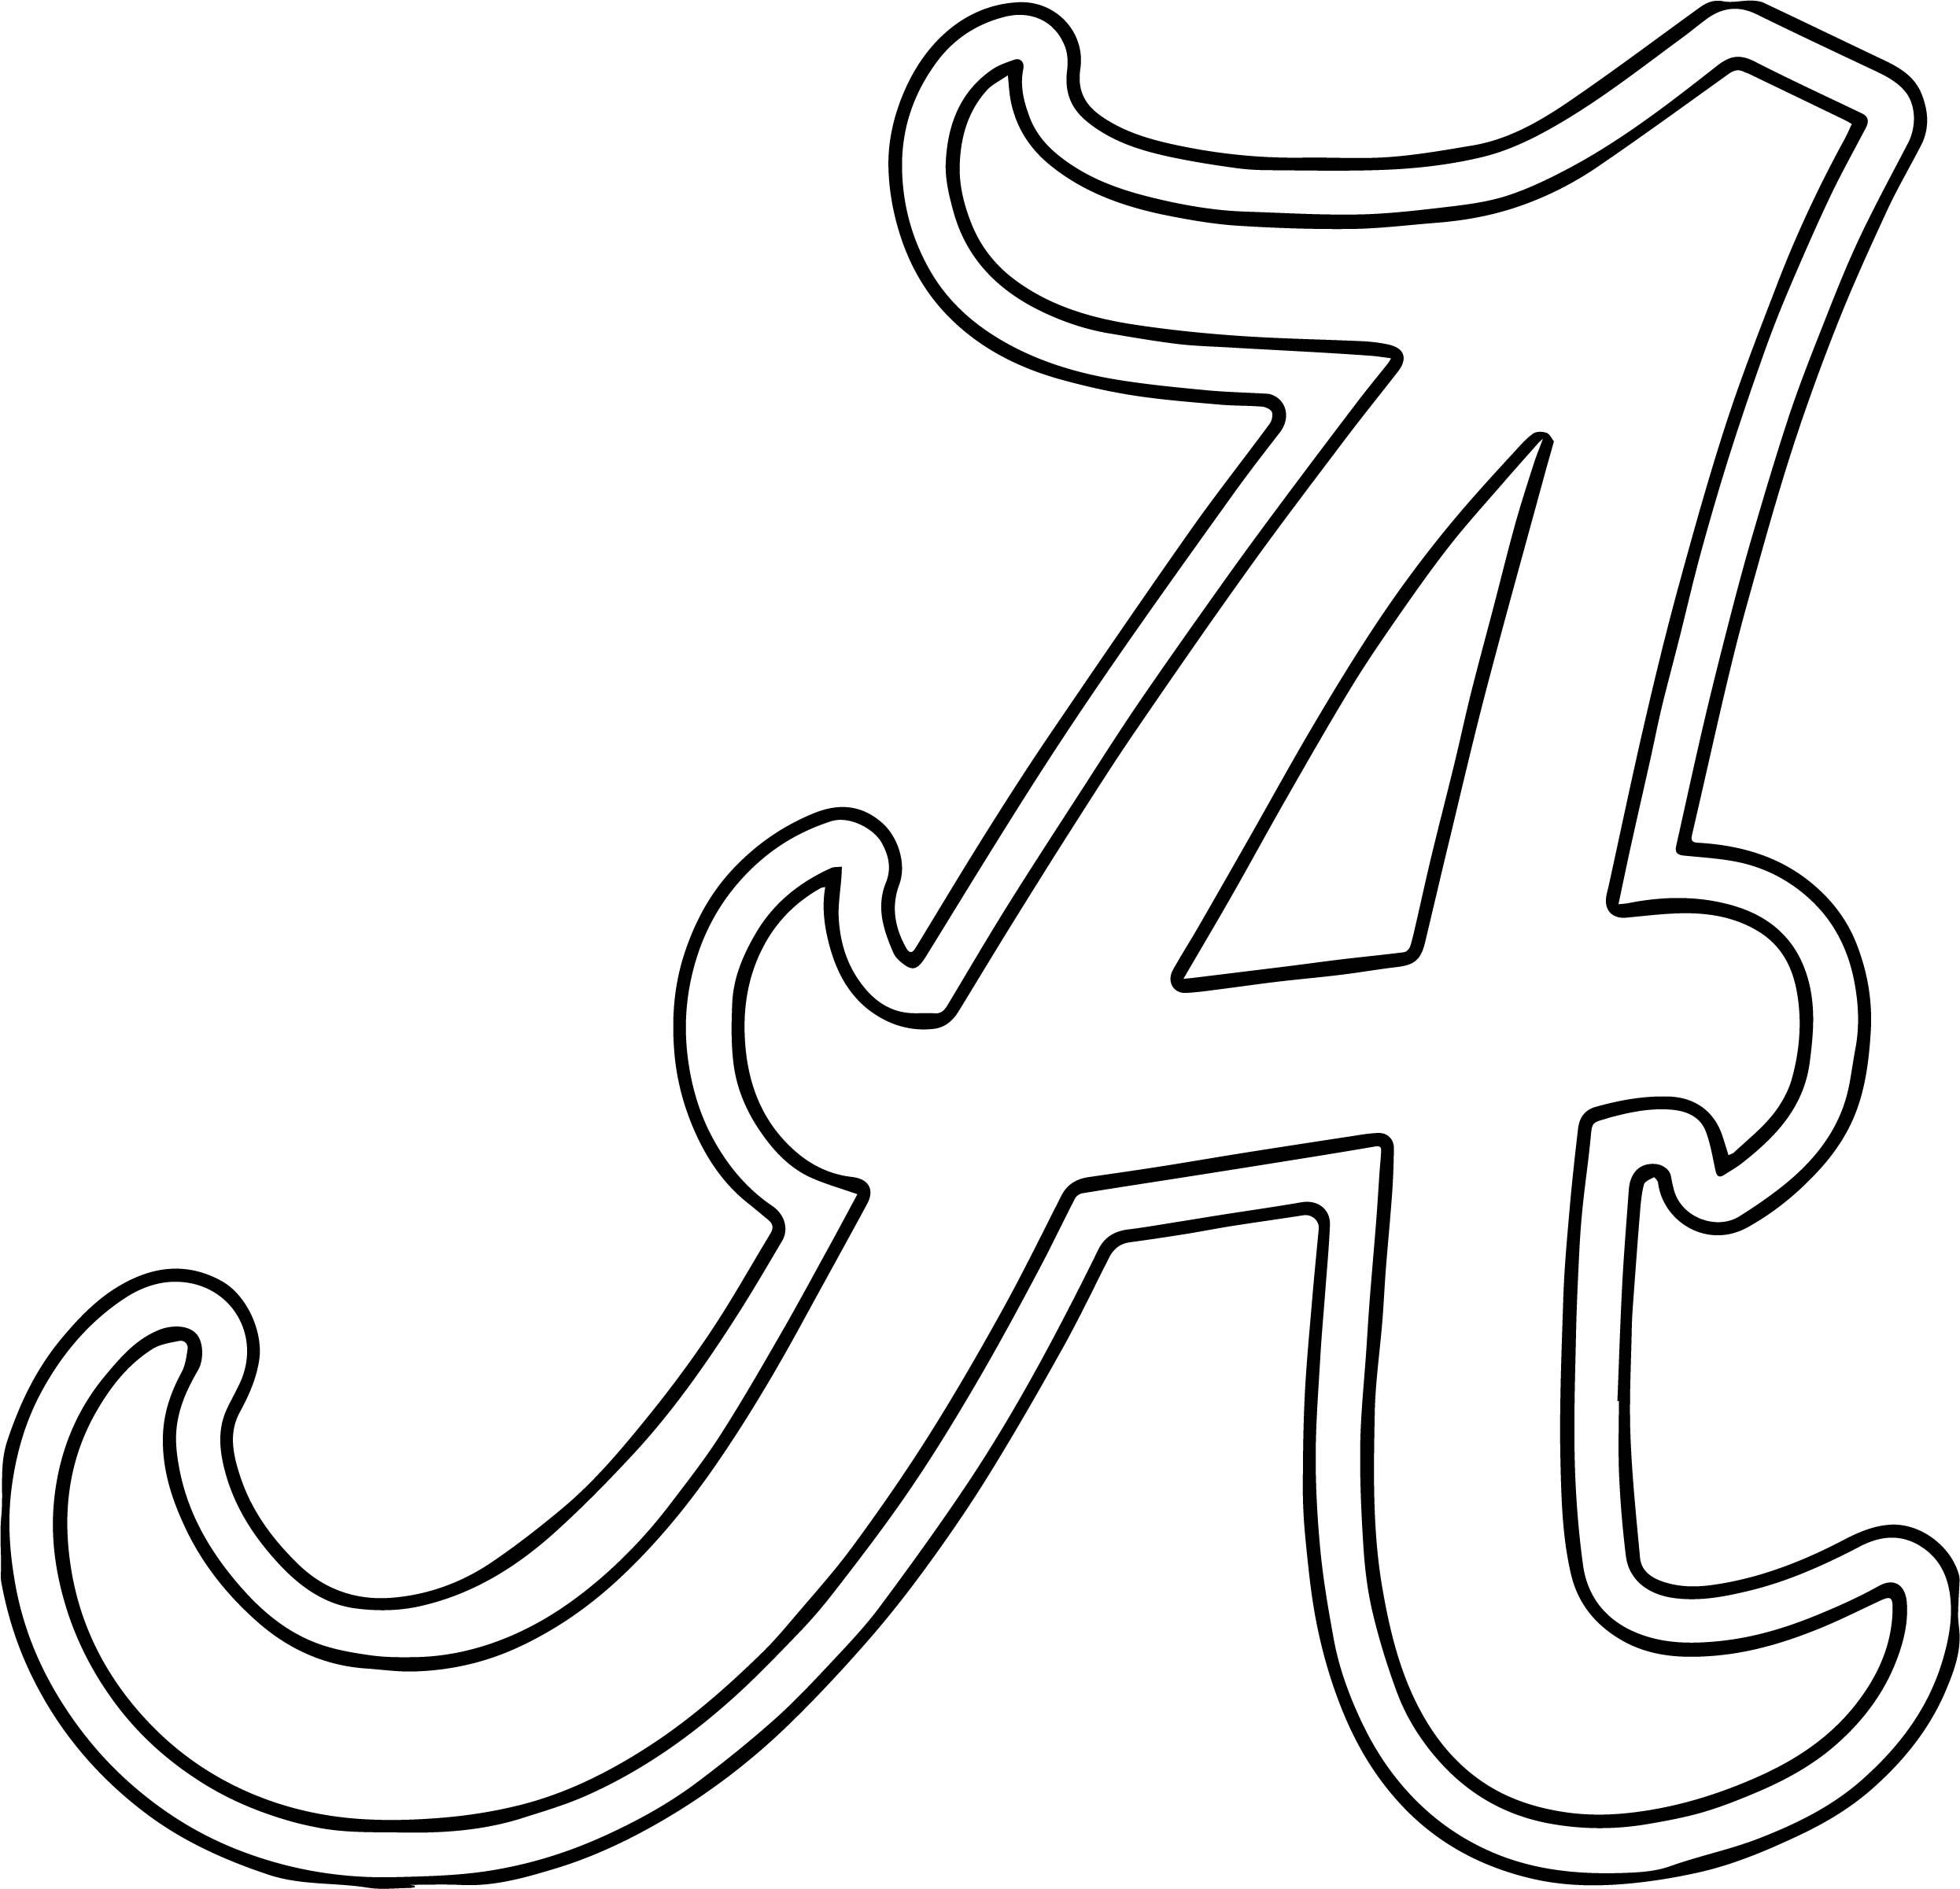 Alabama University Of Alabama A Text Coloring Page | Alabama, Roll ...